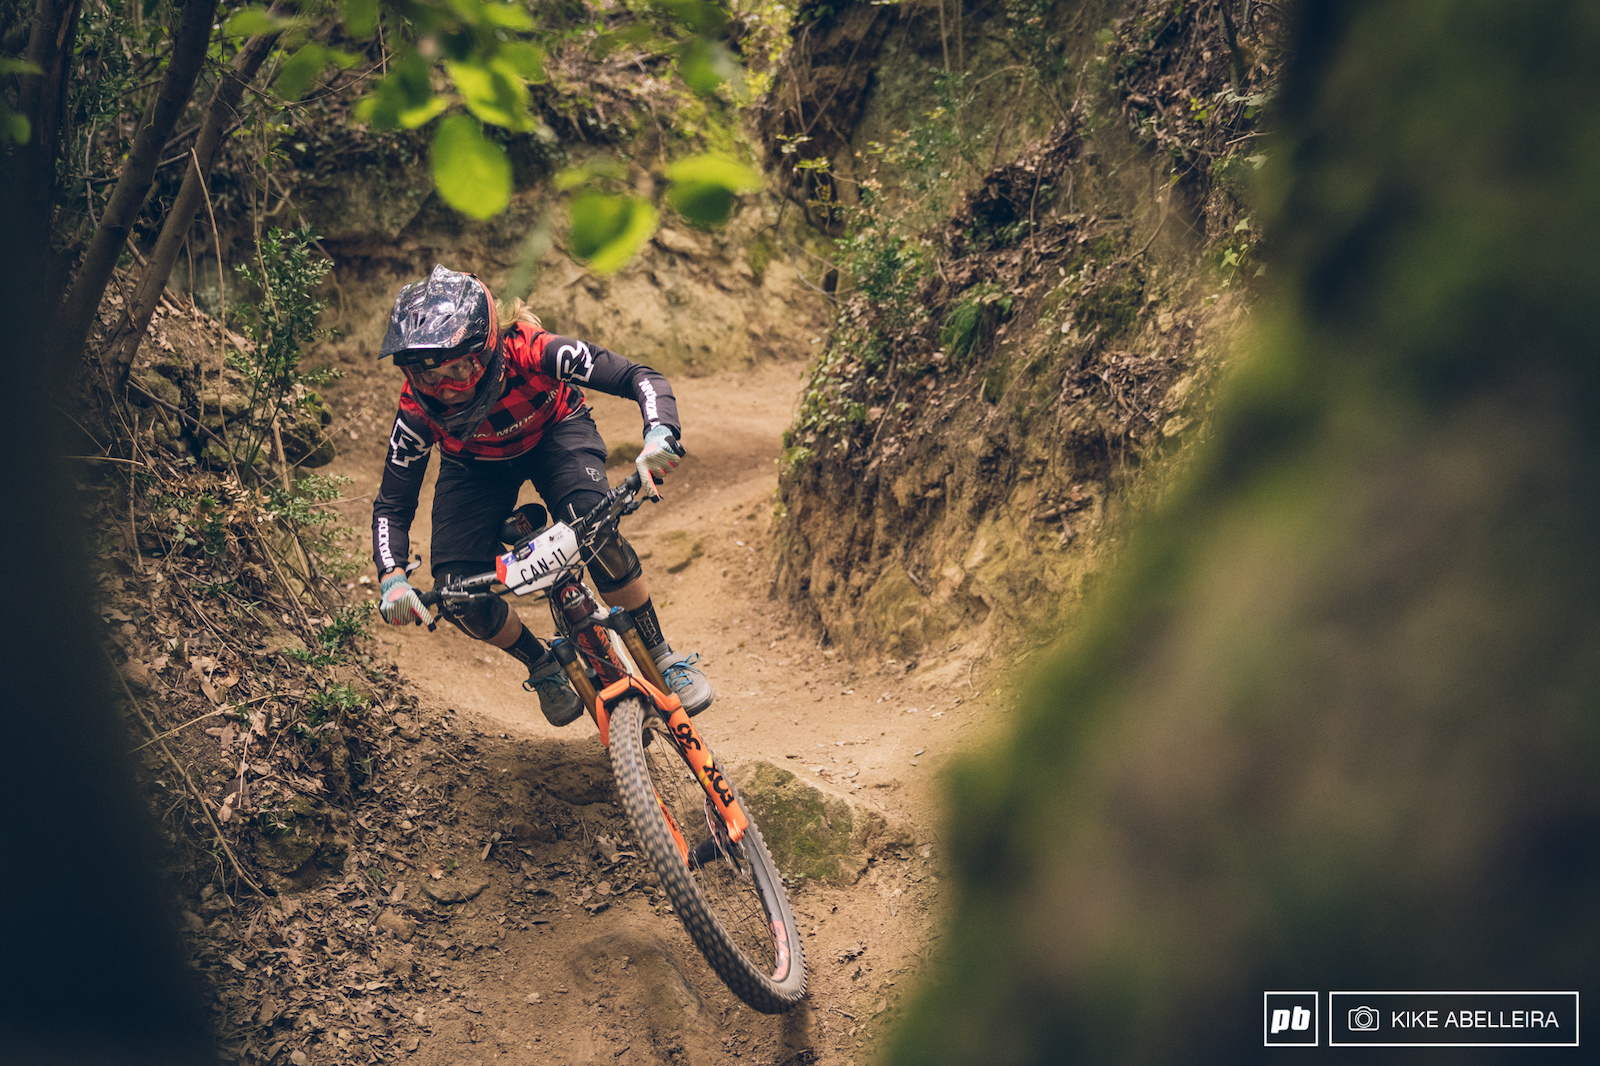 ALN nailing an awesome season with a step on the TON podium after finishing 3rd overall at the EWS last weekend.